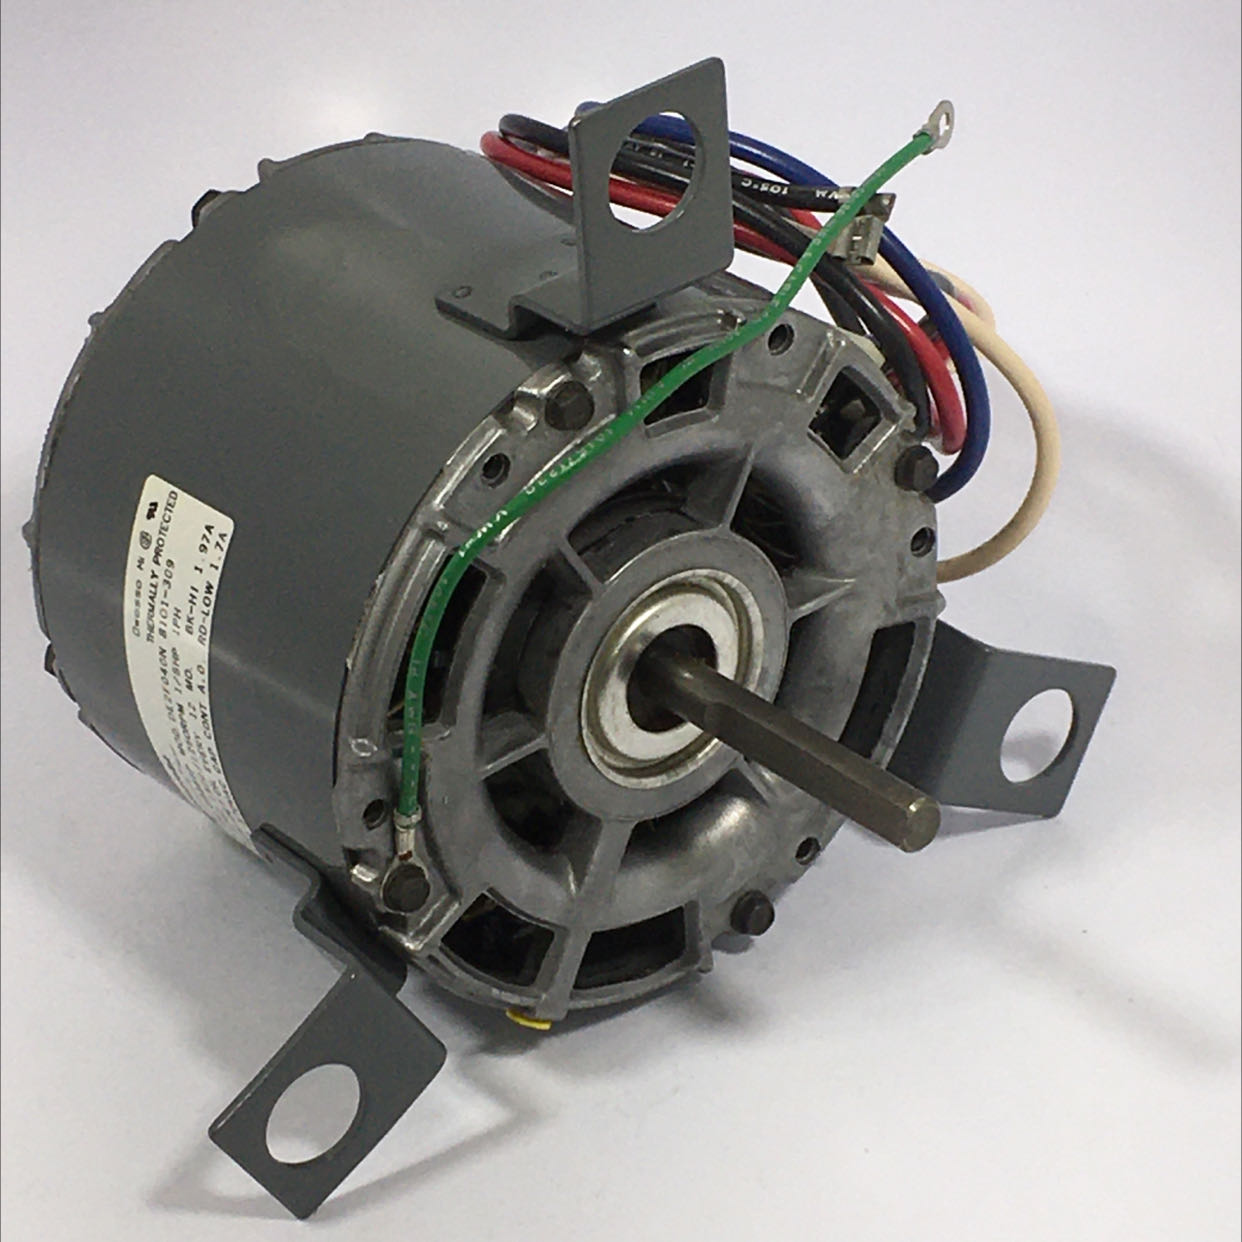 Magnetek DE2F040N Universal Electric Motor 115V 60HZ 1500/1250 RPM 1/8HP 1 PH